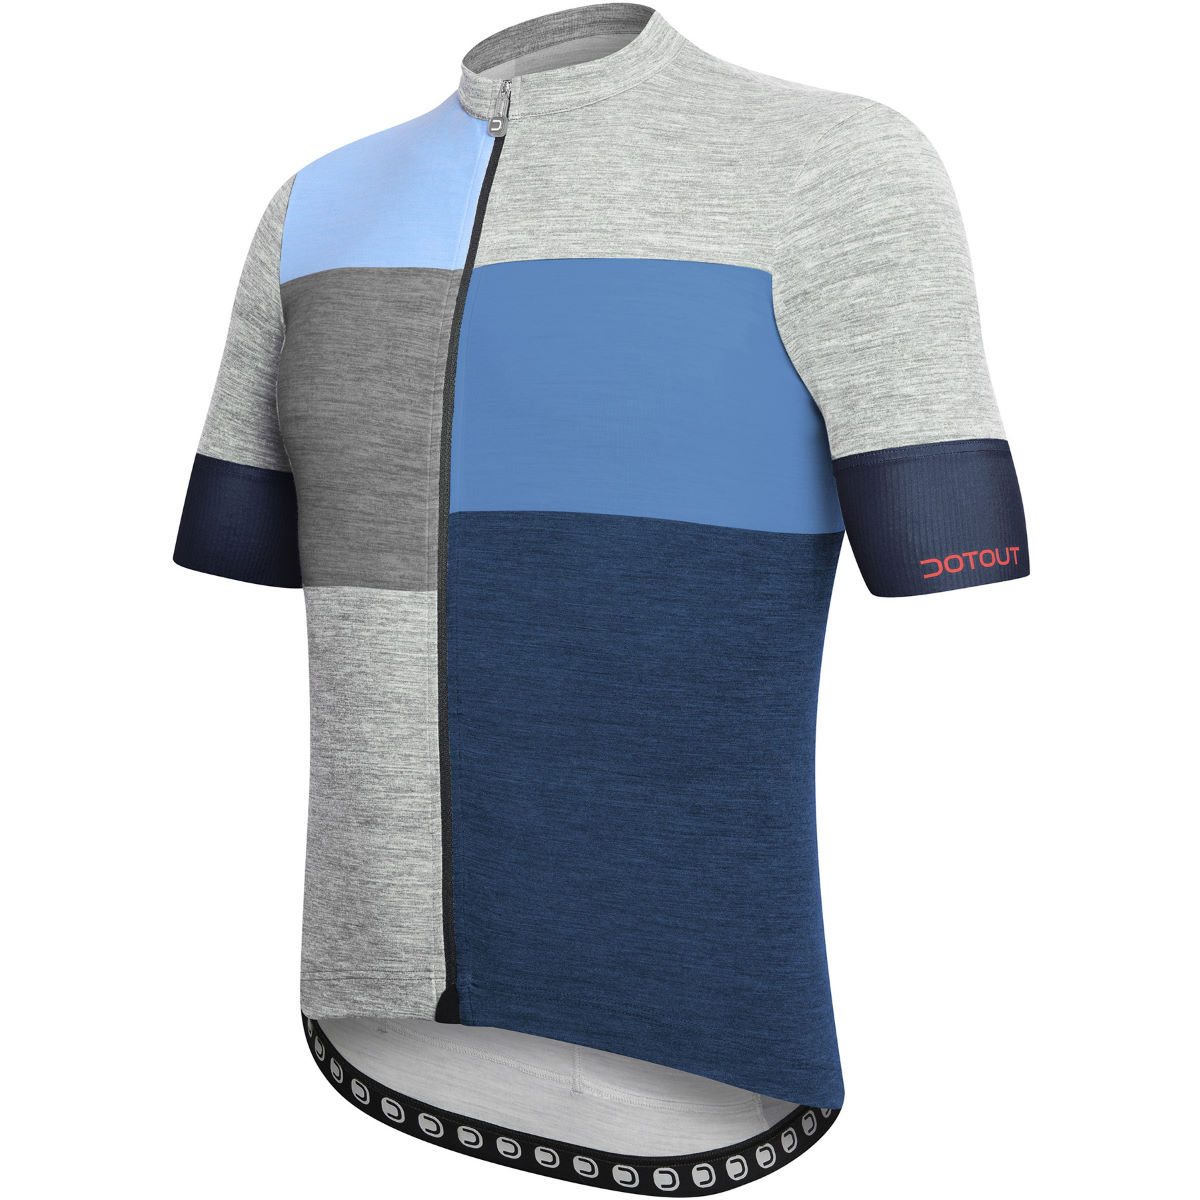 Dotout Square Jersey Grey/Red 3XL - S Grey/Blue